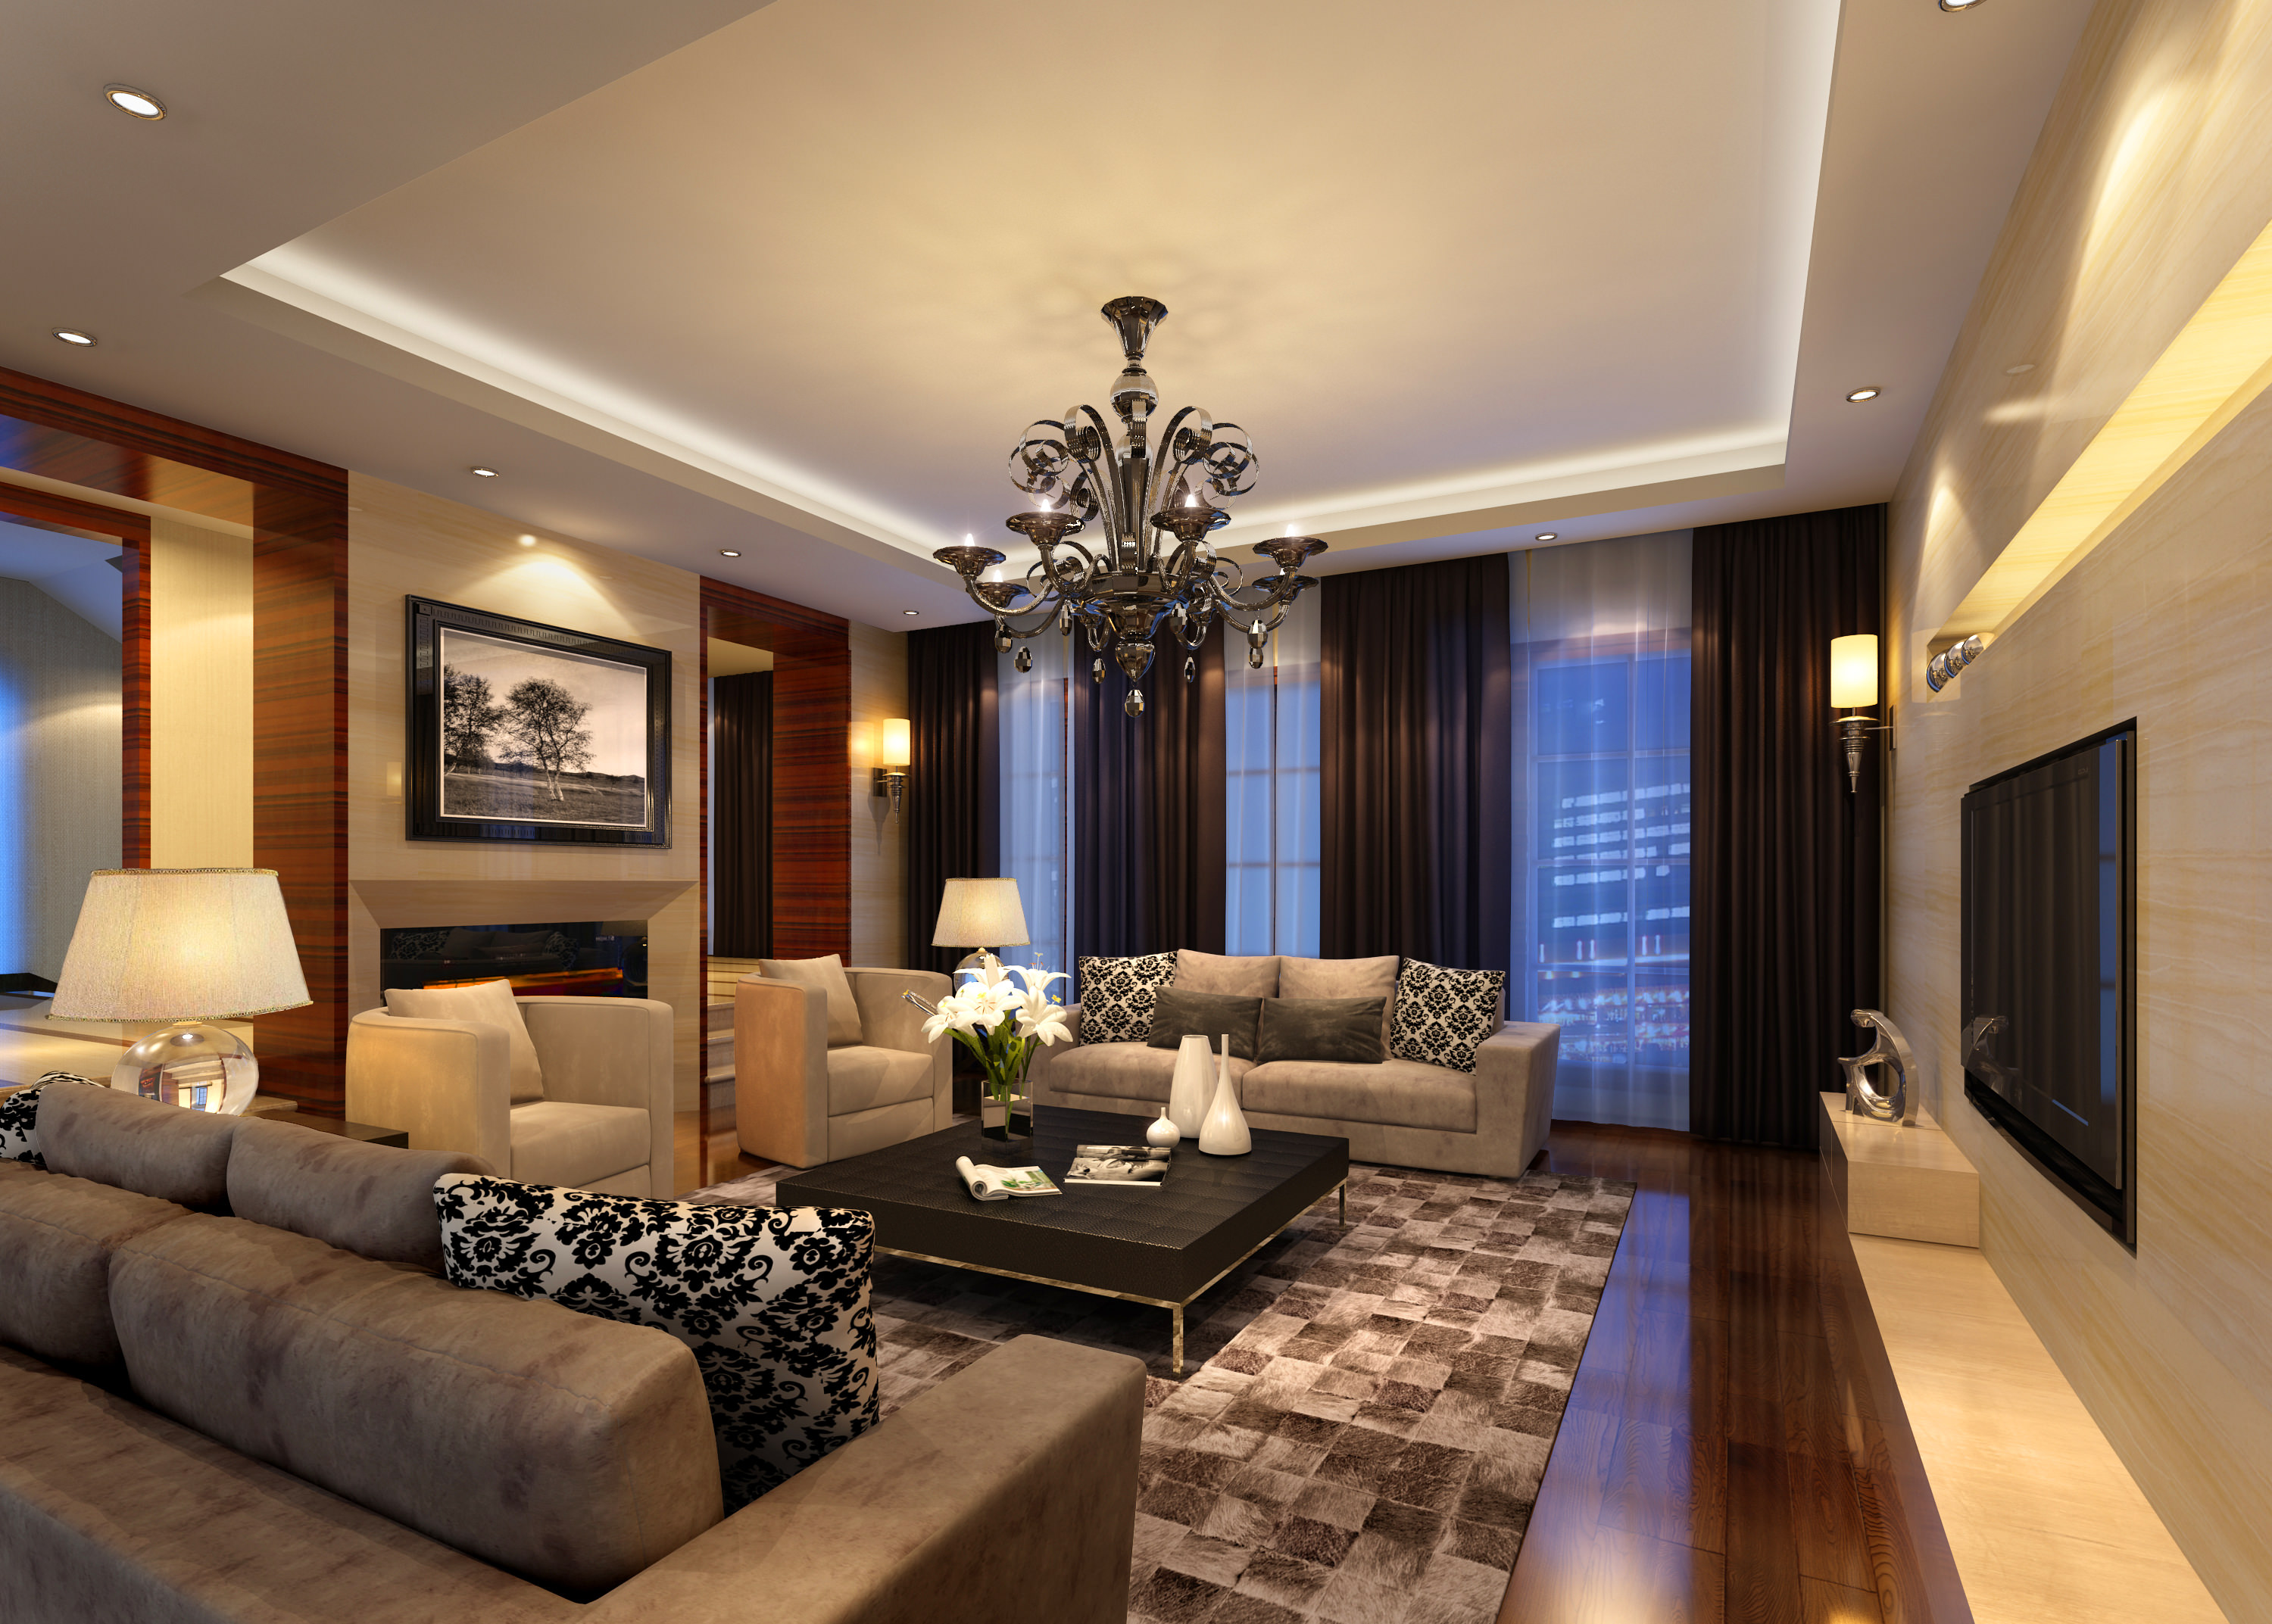 Living room 3d model max for 3d interior design of living room